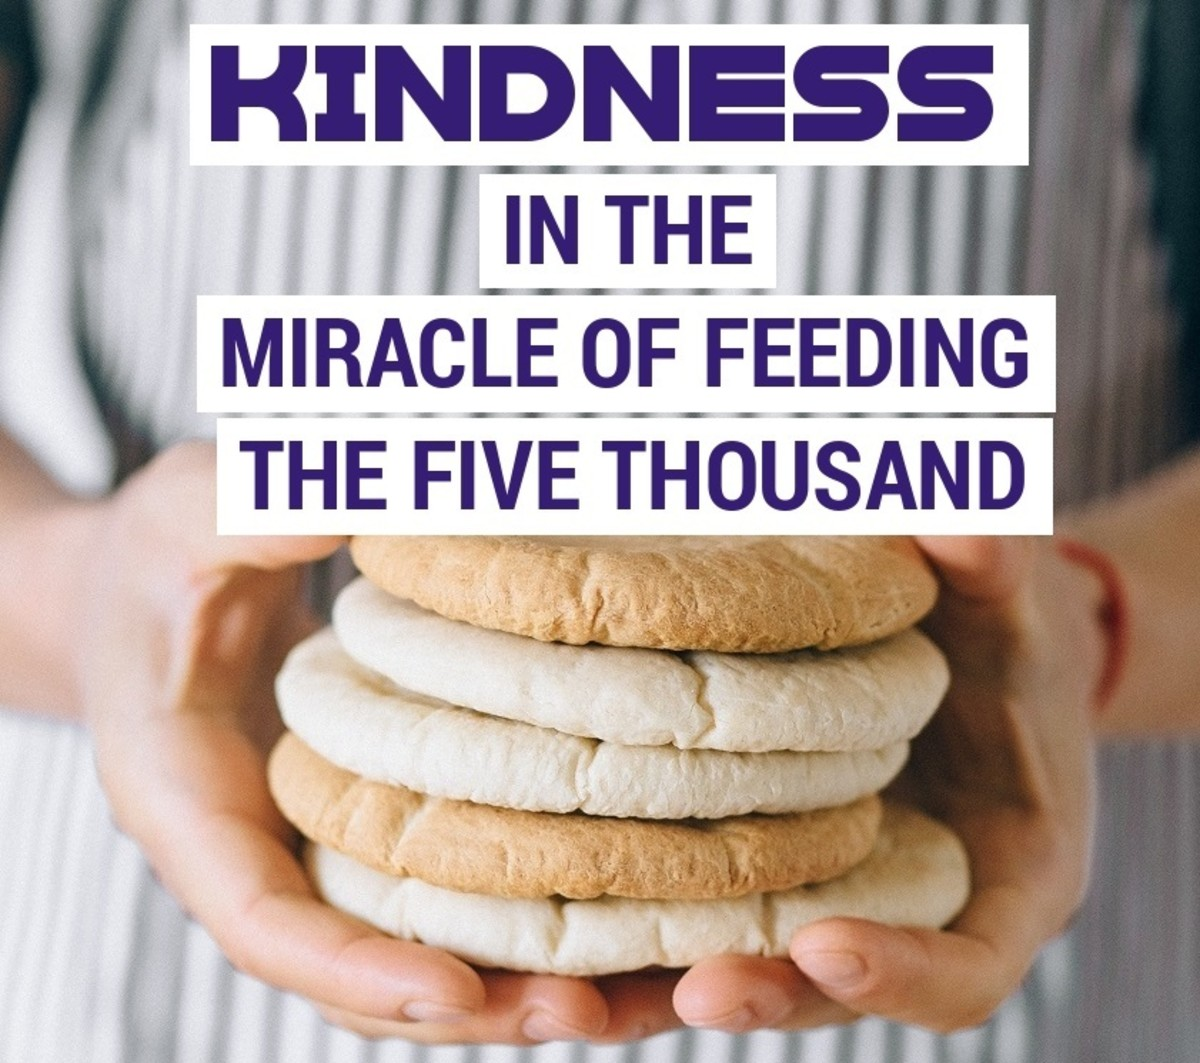 Jesus miraculously fed five thousand with five loaves and two fish.